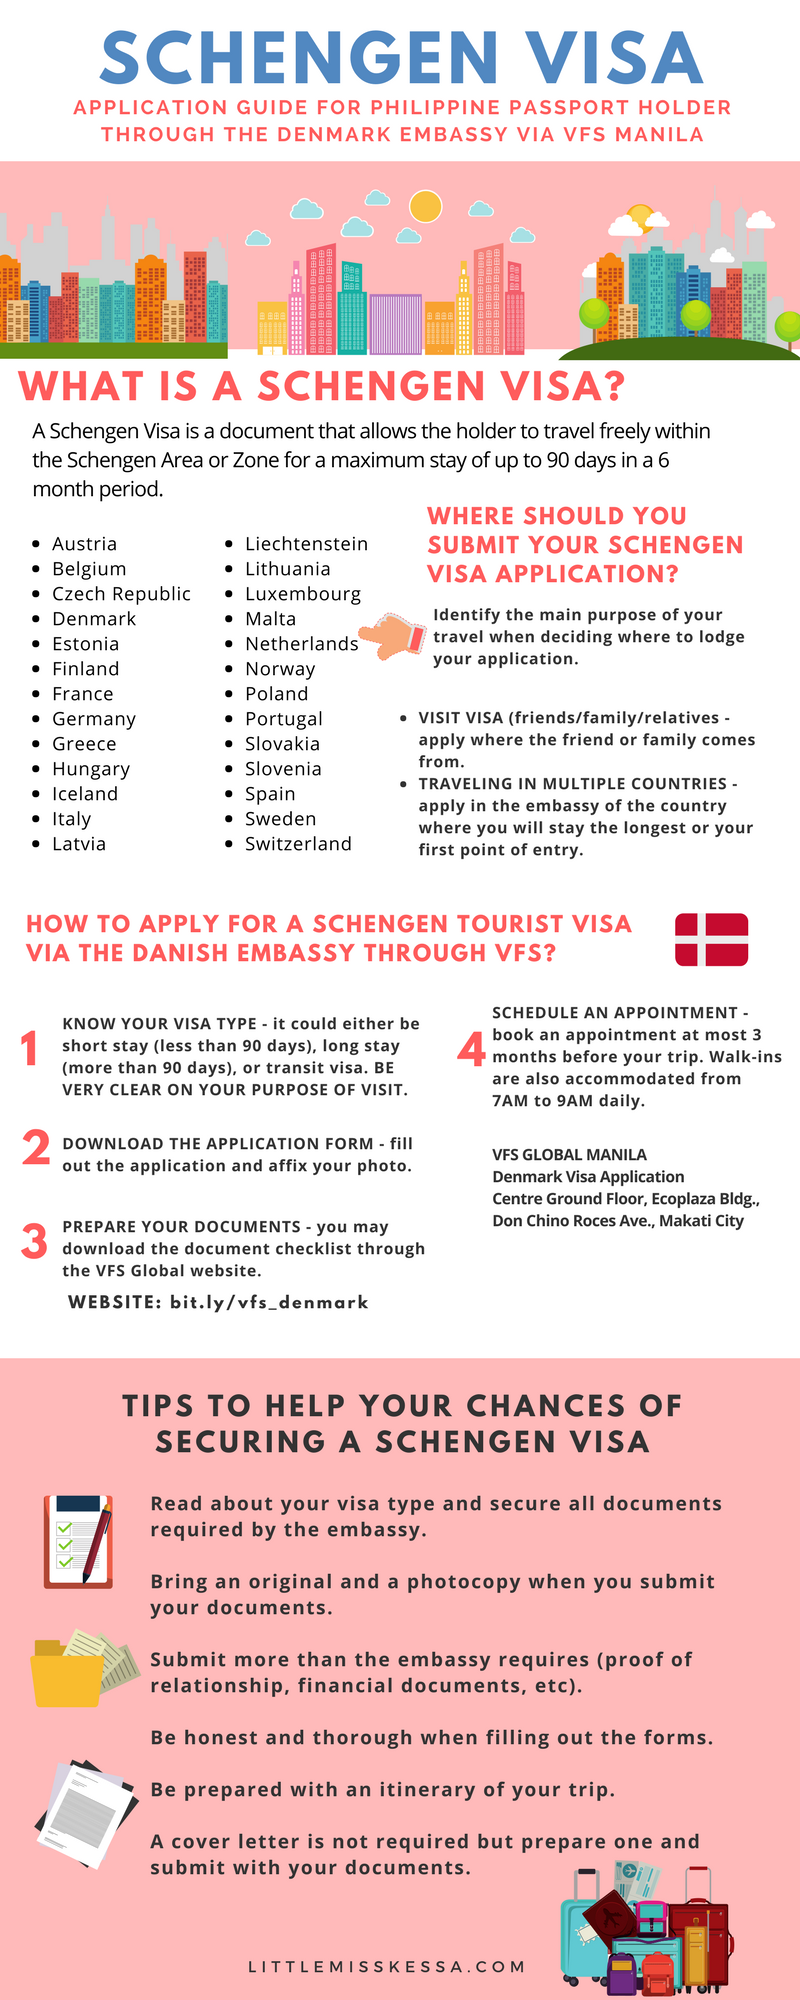 Here's a quick guide on how to apply for a Schengen visa through the on green card form, work permit form, nomination form, doctor physical examination form, visa application letter, visa passport, tax form, visa ds-160 form sample, invitation letter form, insurance form, job search form, visa invitation form, travel itinerary form, visa documents folder, passport renewal form,